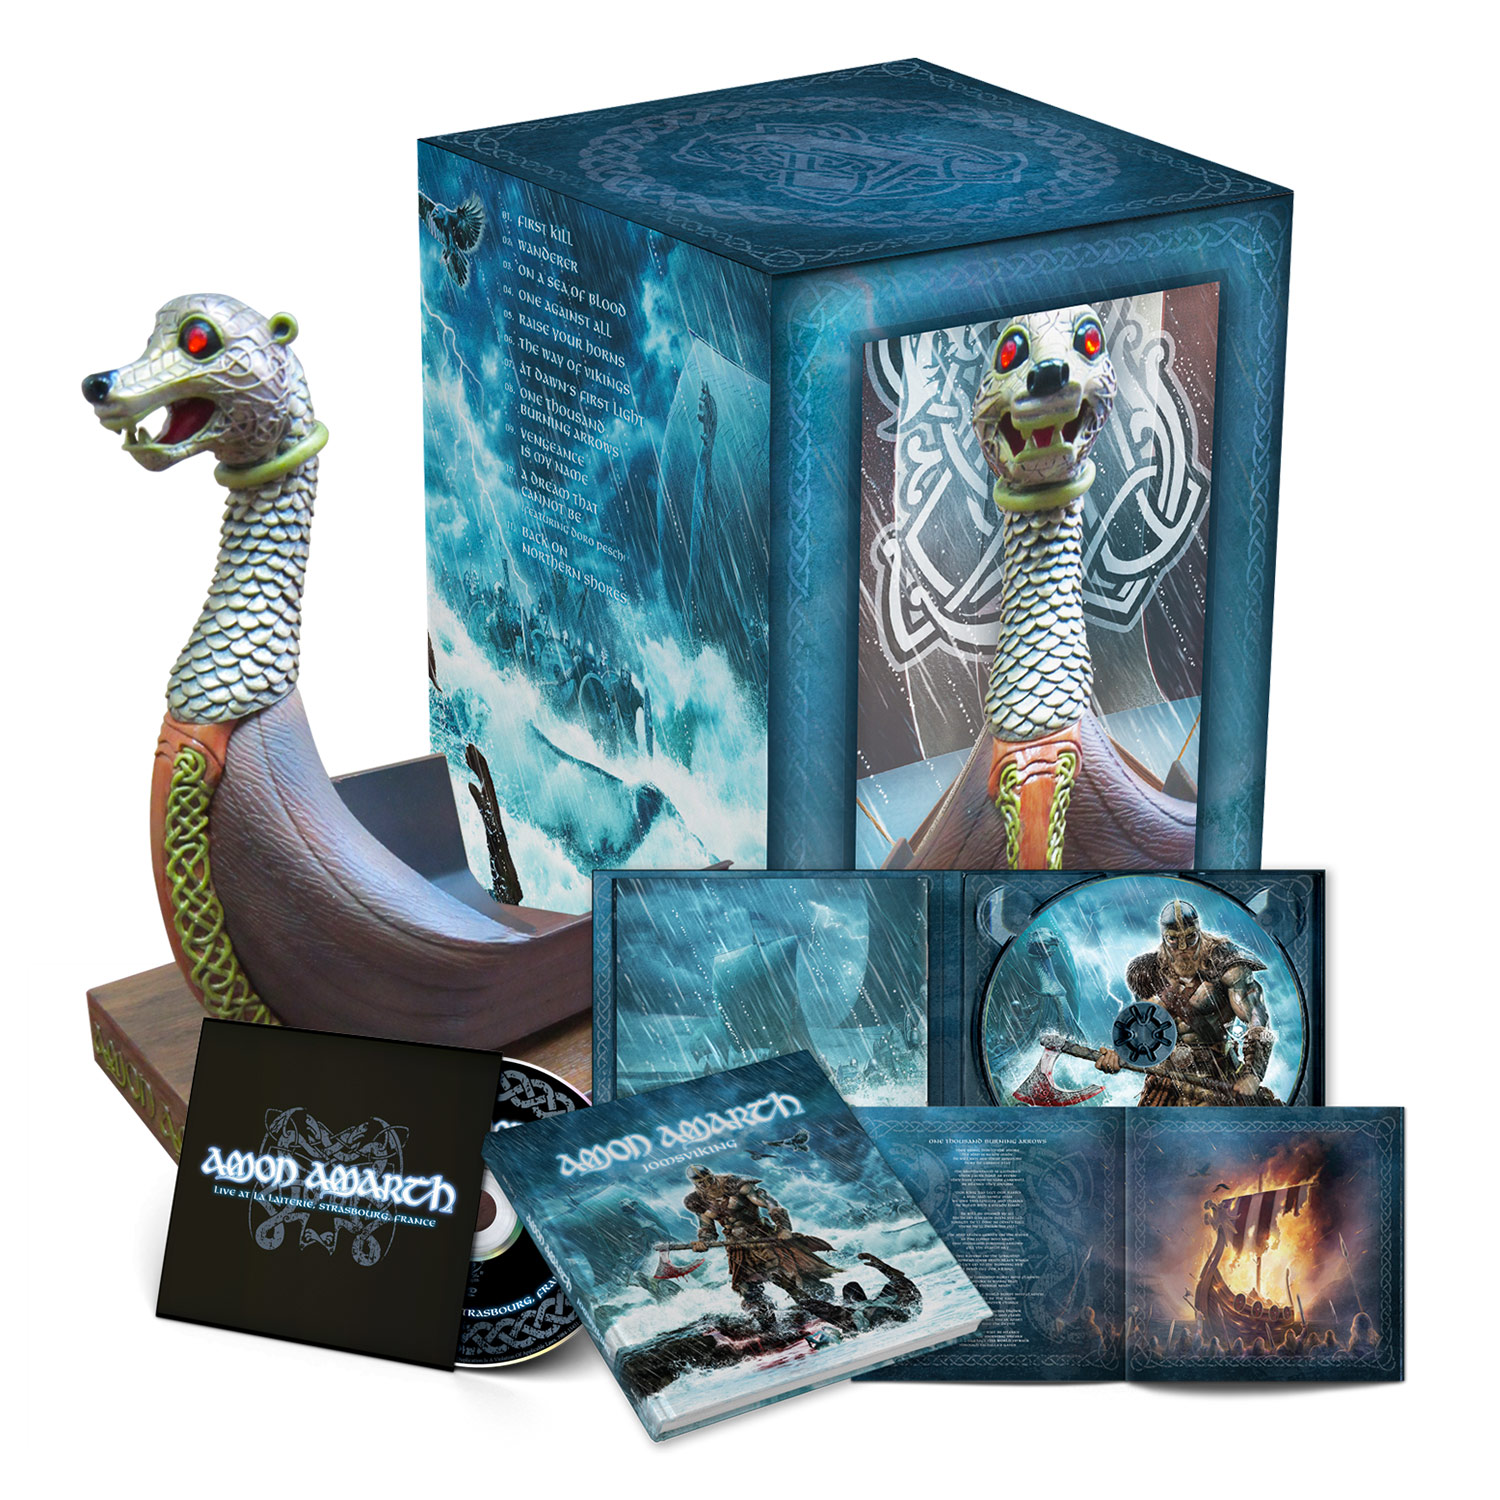 amon amarth jomsviking limited edition box set boxset metal blade records. Black Bedroom Furniture Sets. Home Design Ideas